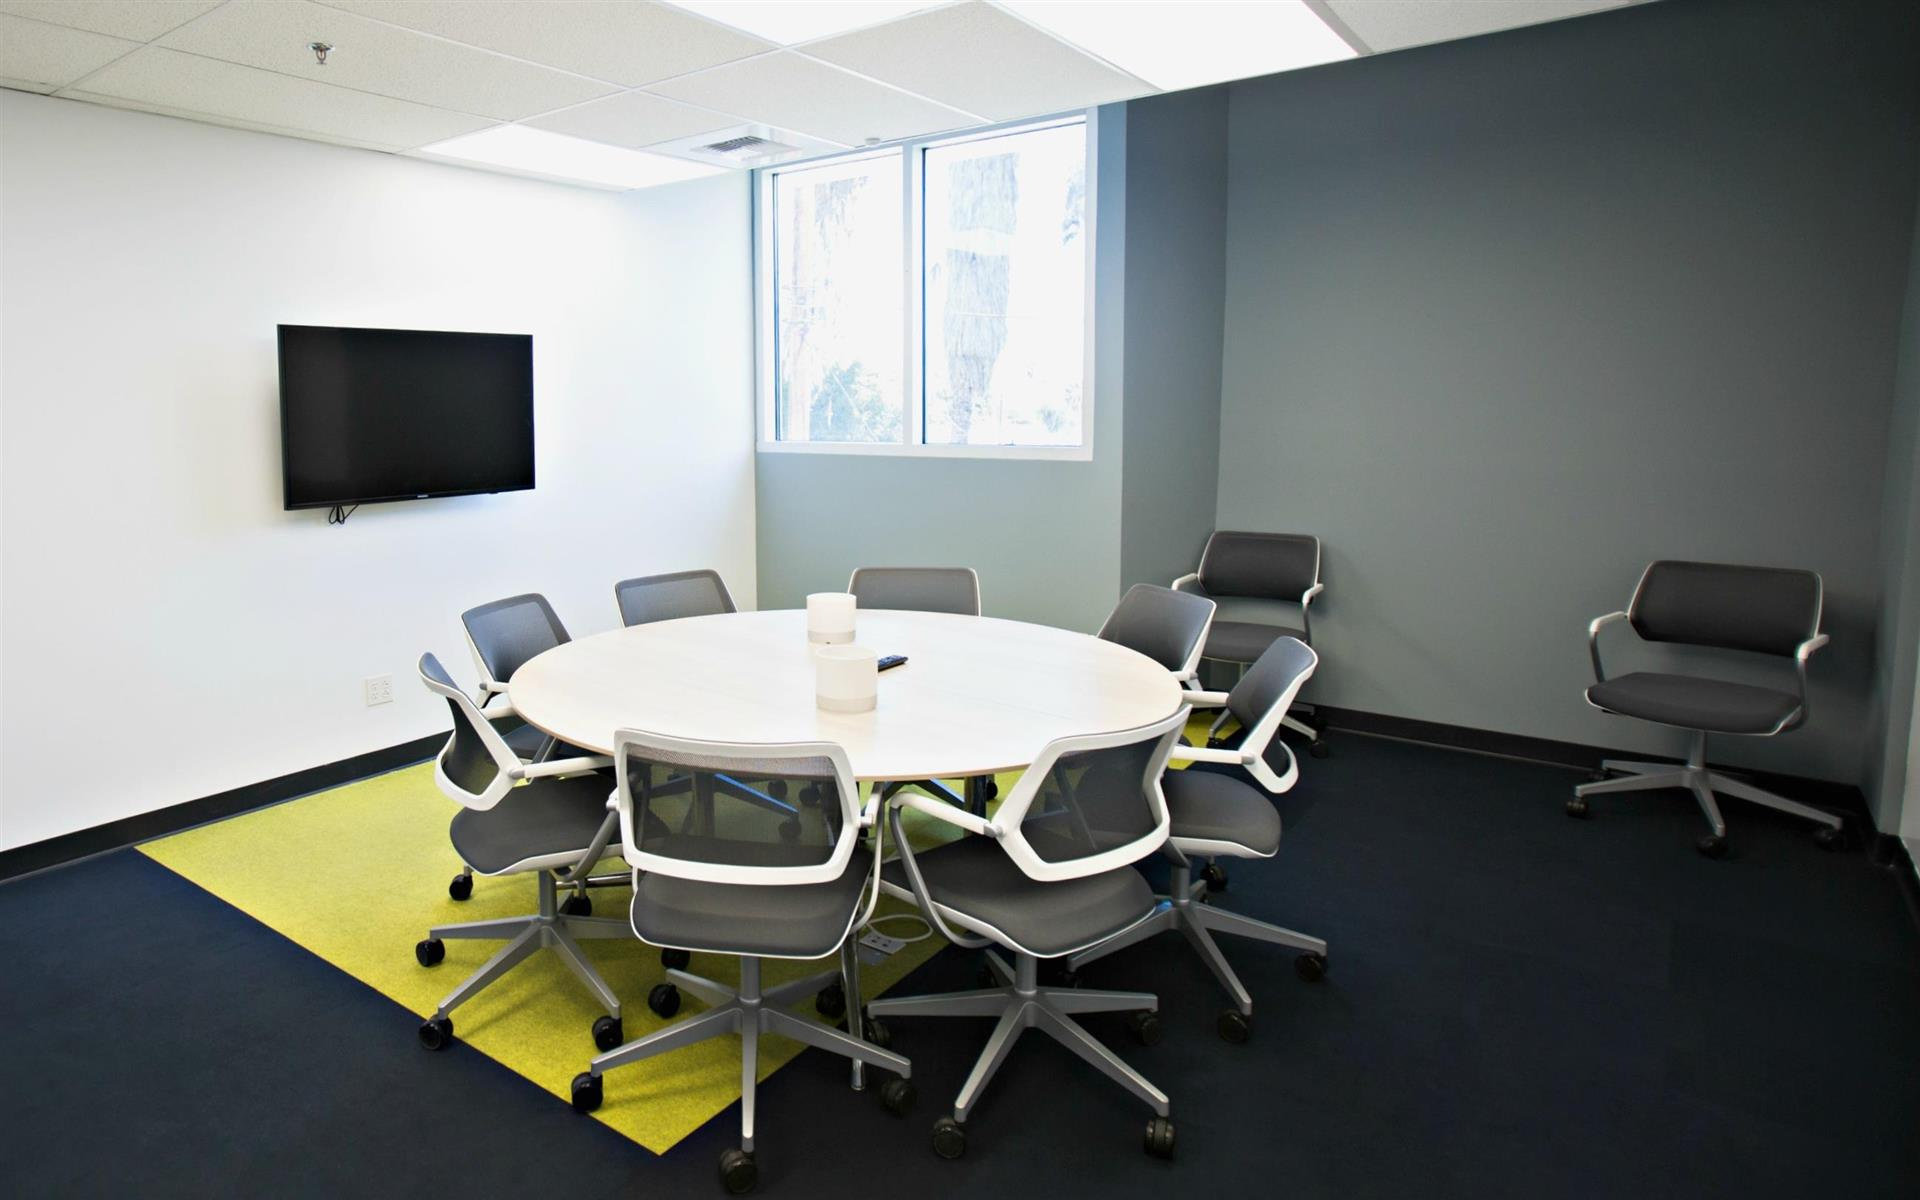 SANDHOUSE Los Angeles - Small Conference Room